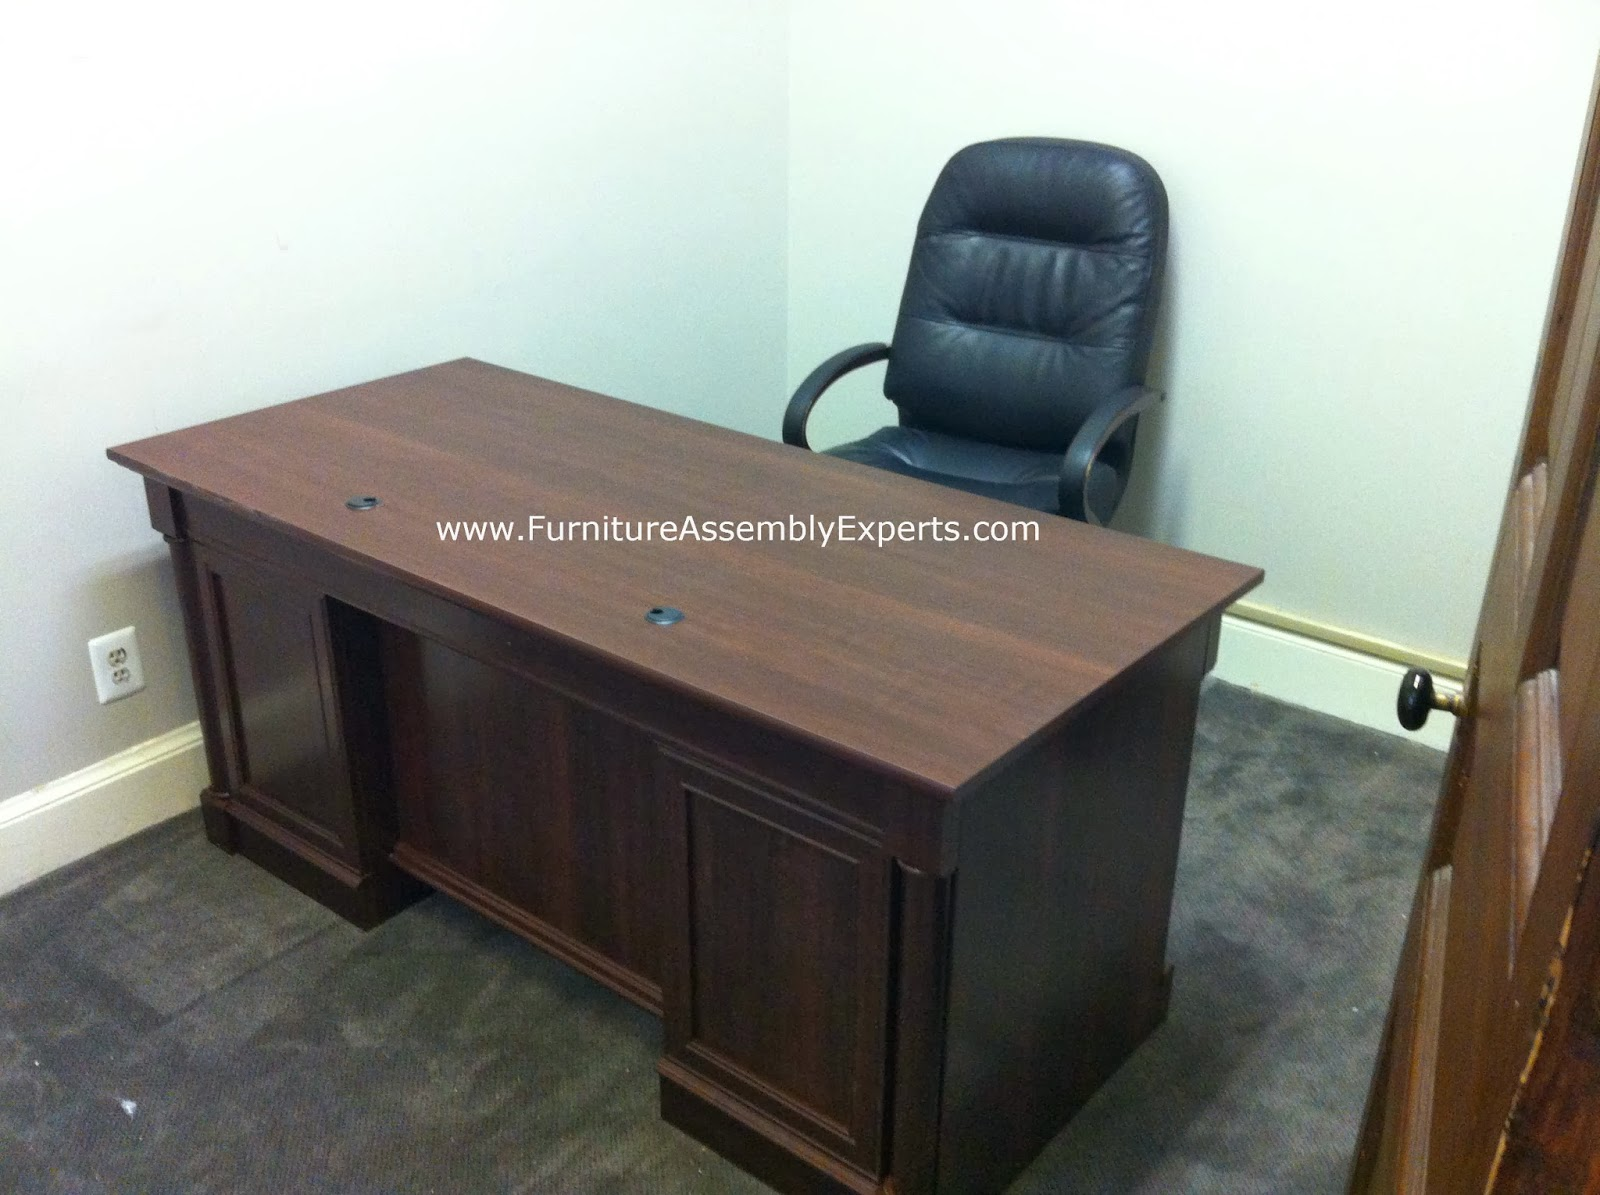 Sensational Md Office Furniture Installers Same Day Service Desks Complete Home Design Collection Epsylindsey Bellcom